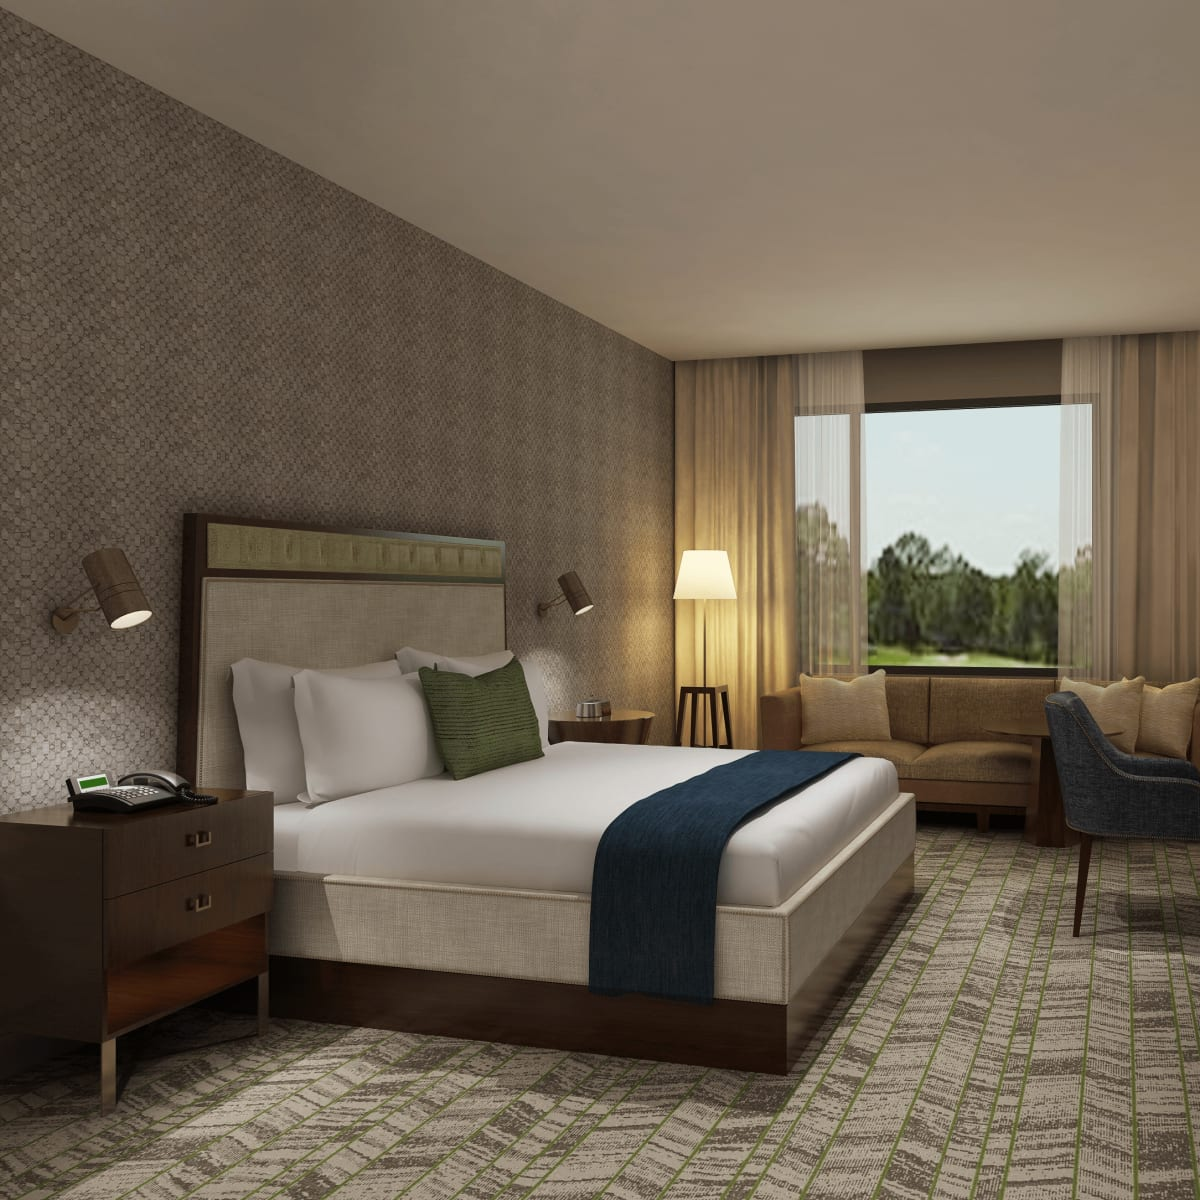 The Stella hotel College Station room